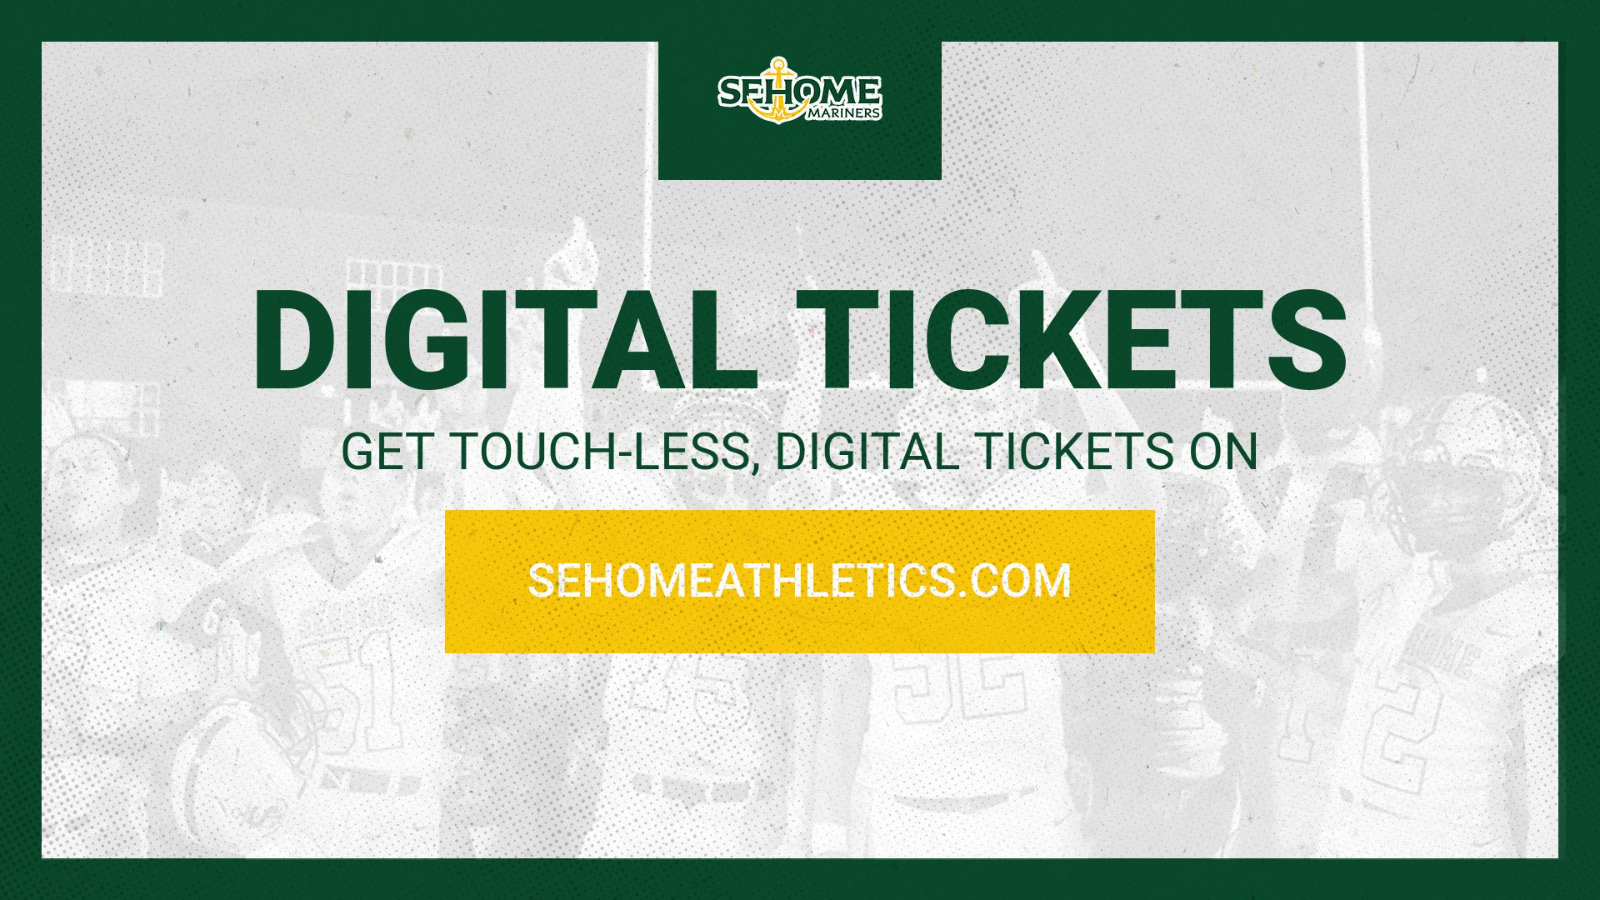 Digital Ticketing for Sehome Athletics